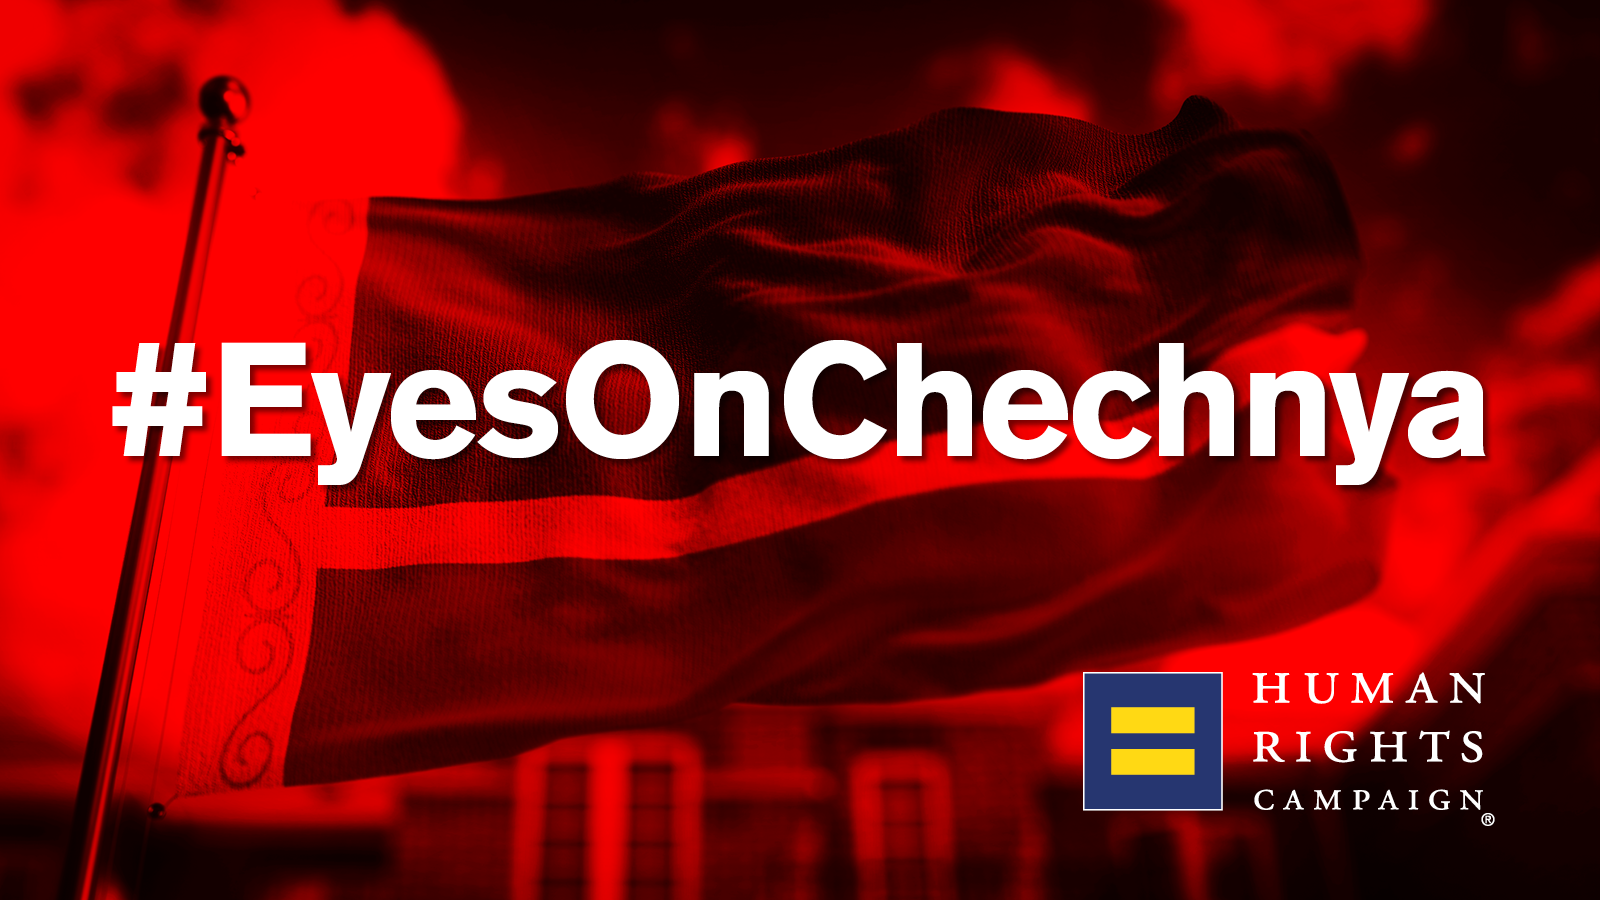 Senate Committee Passes Bipartisan Resolution Condemning Violence Against LGBTQ People in Chechnya